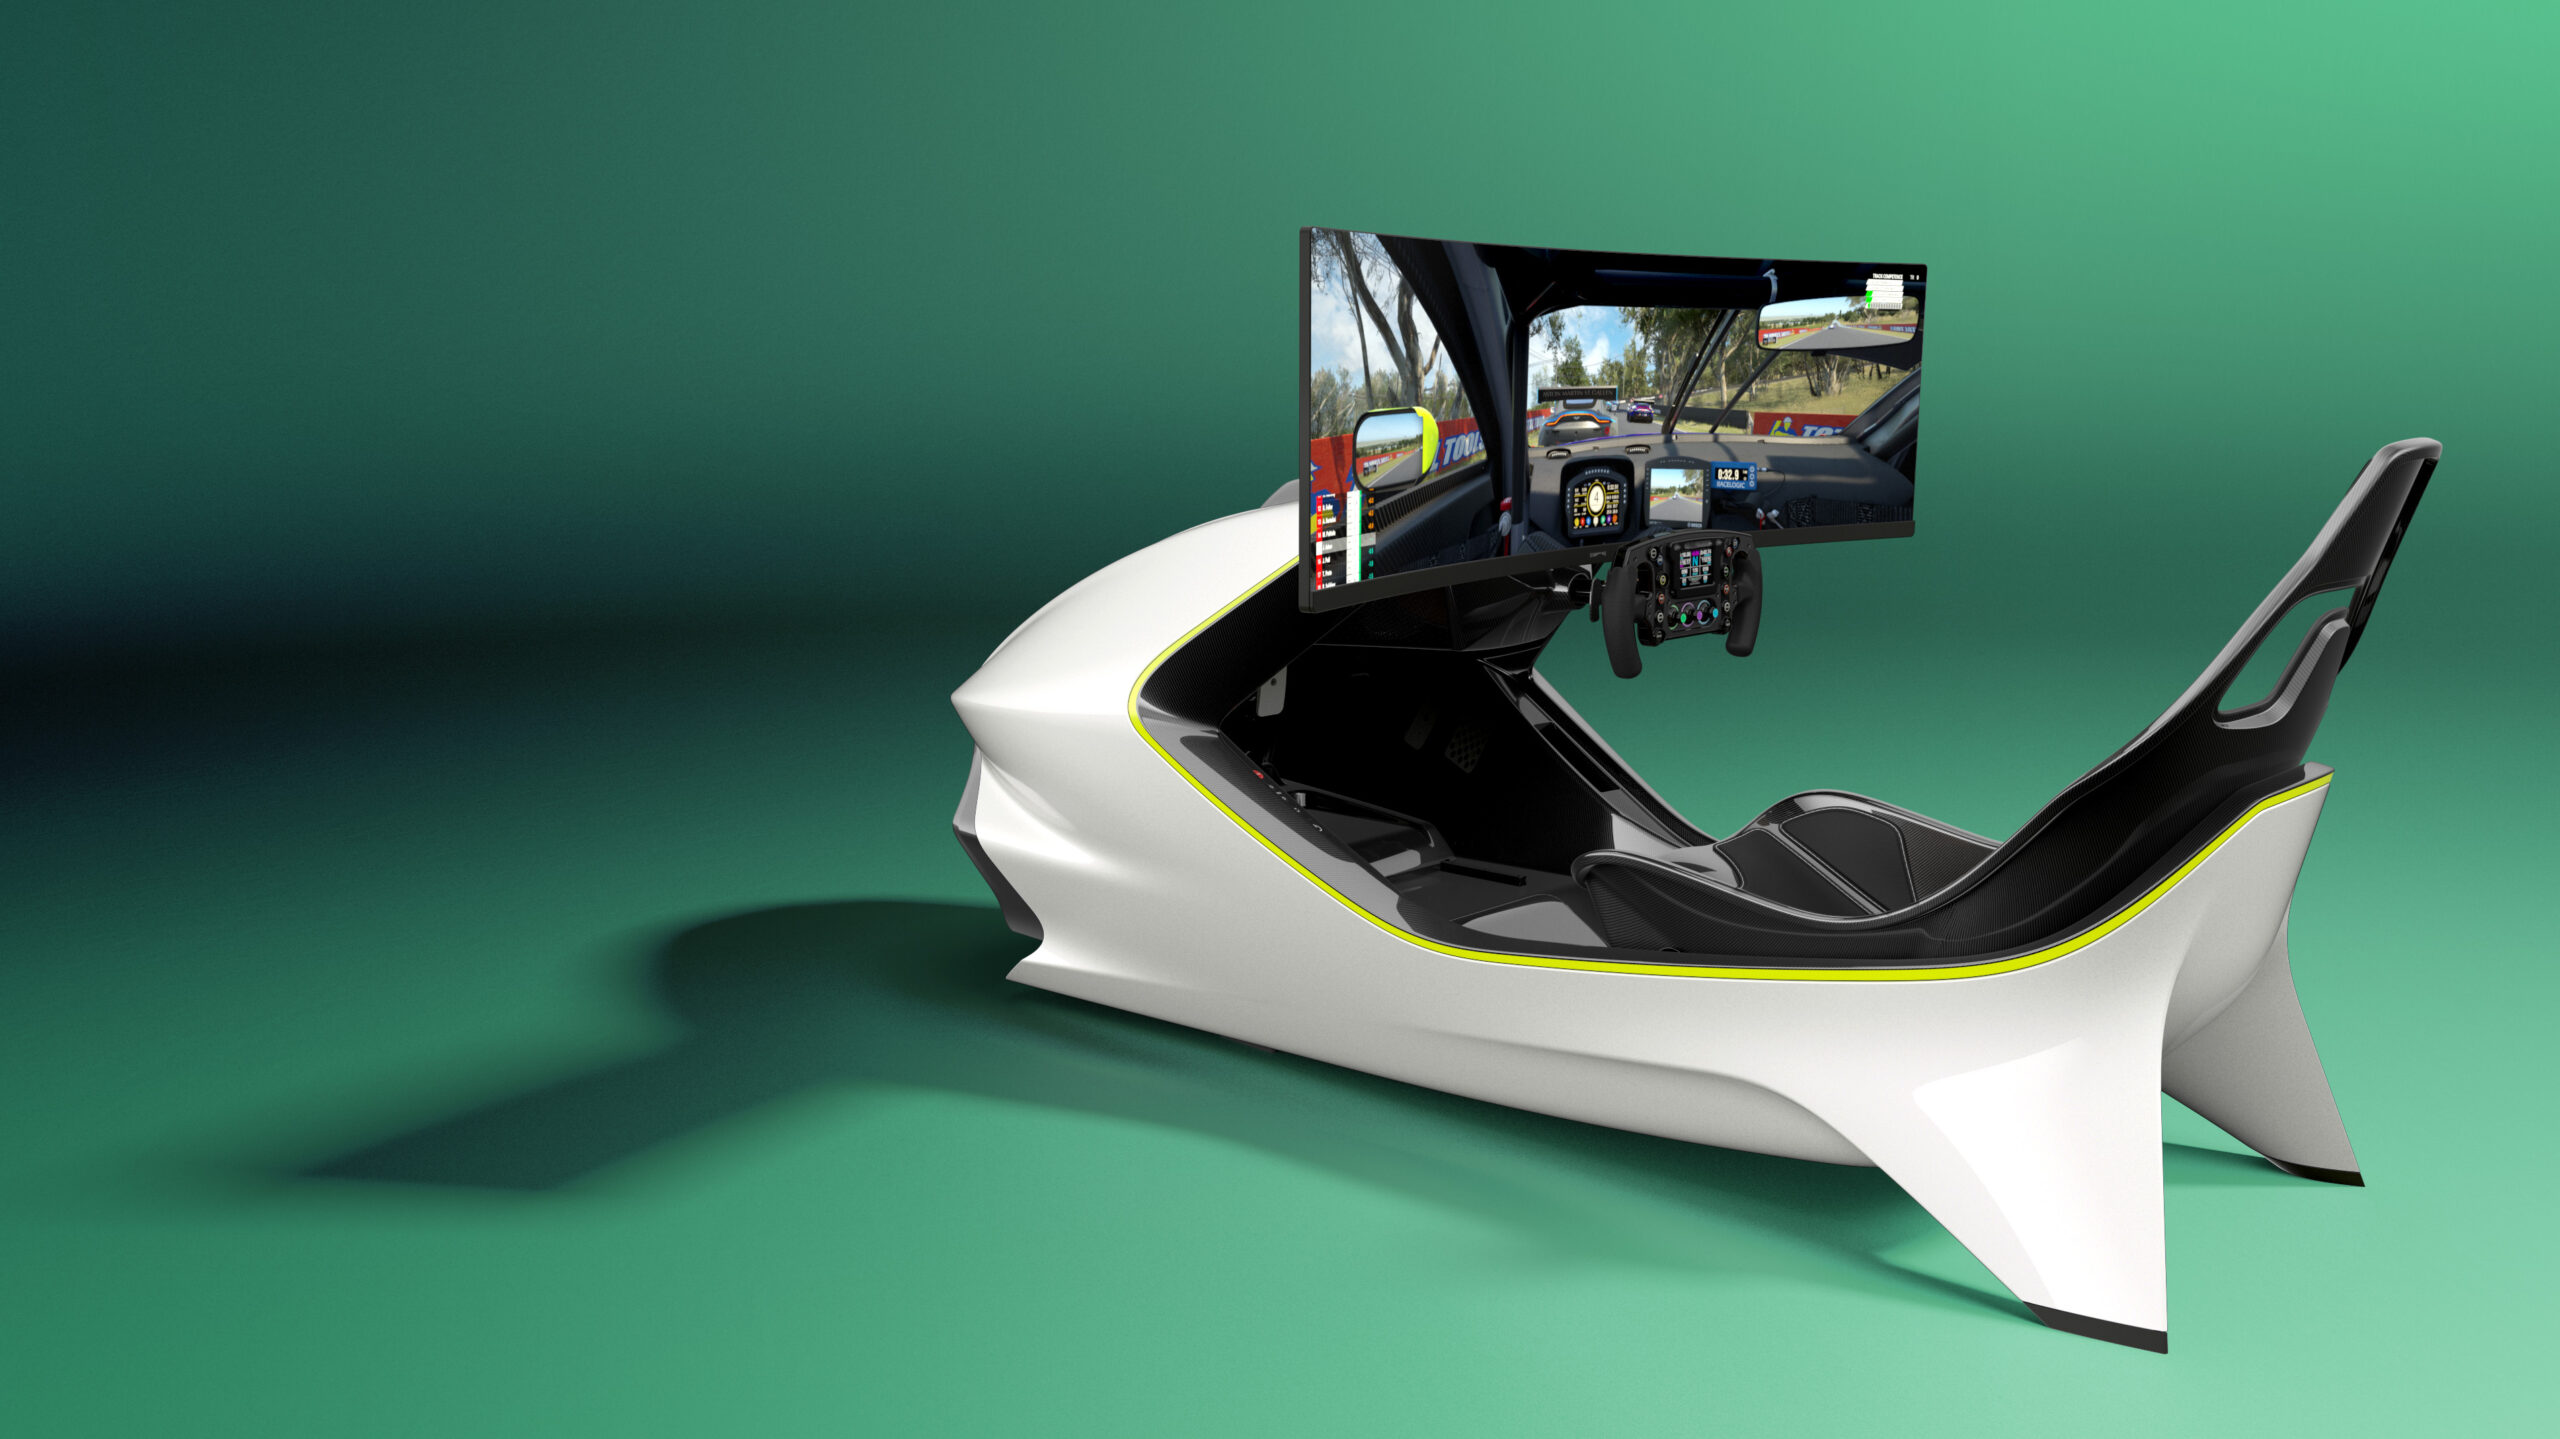 the Aston Martin Racing Simulator AMR-C01 on show!